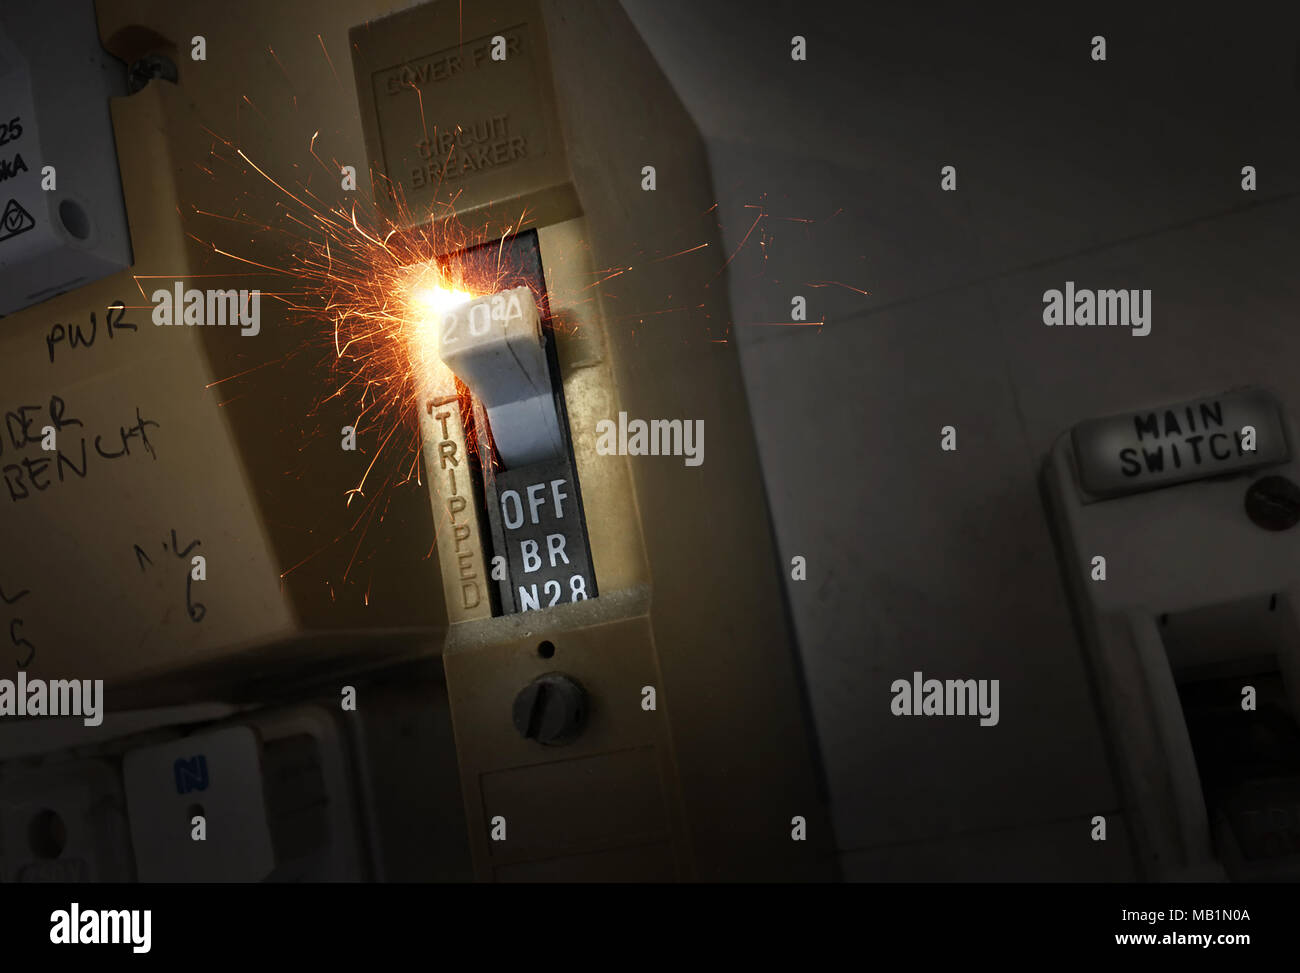 hight resolution of sparks flying from an old electrical switch which causes a house fire stock image